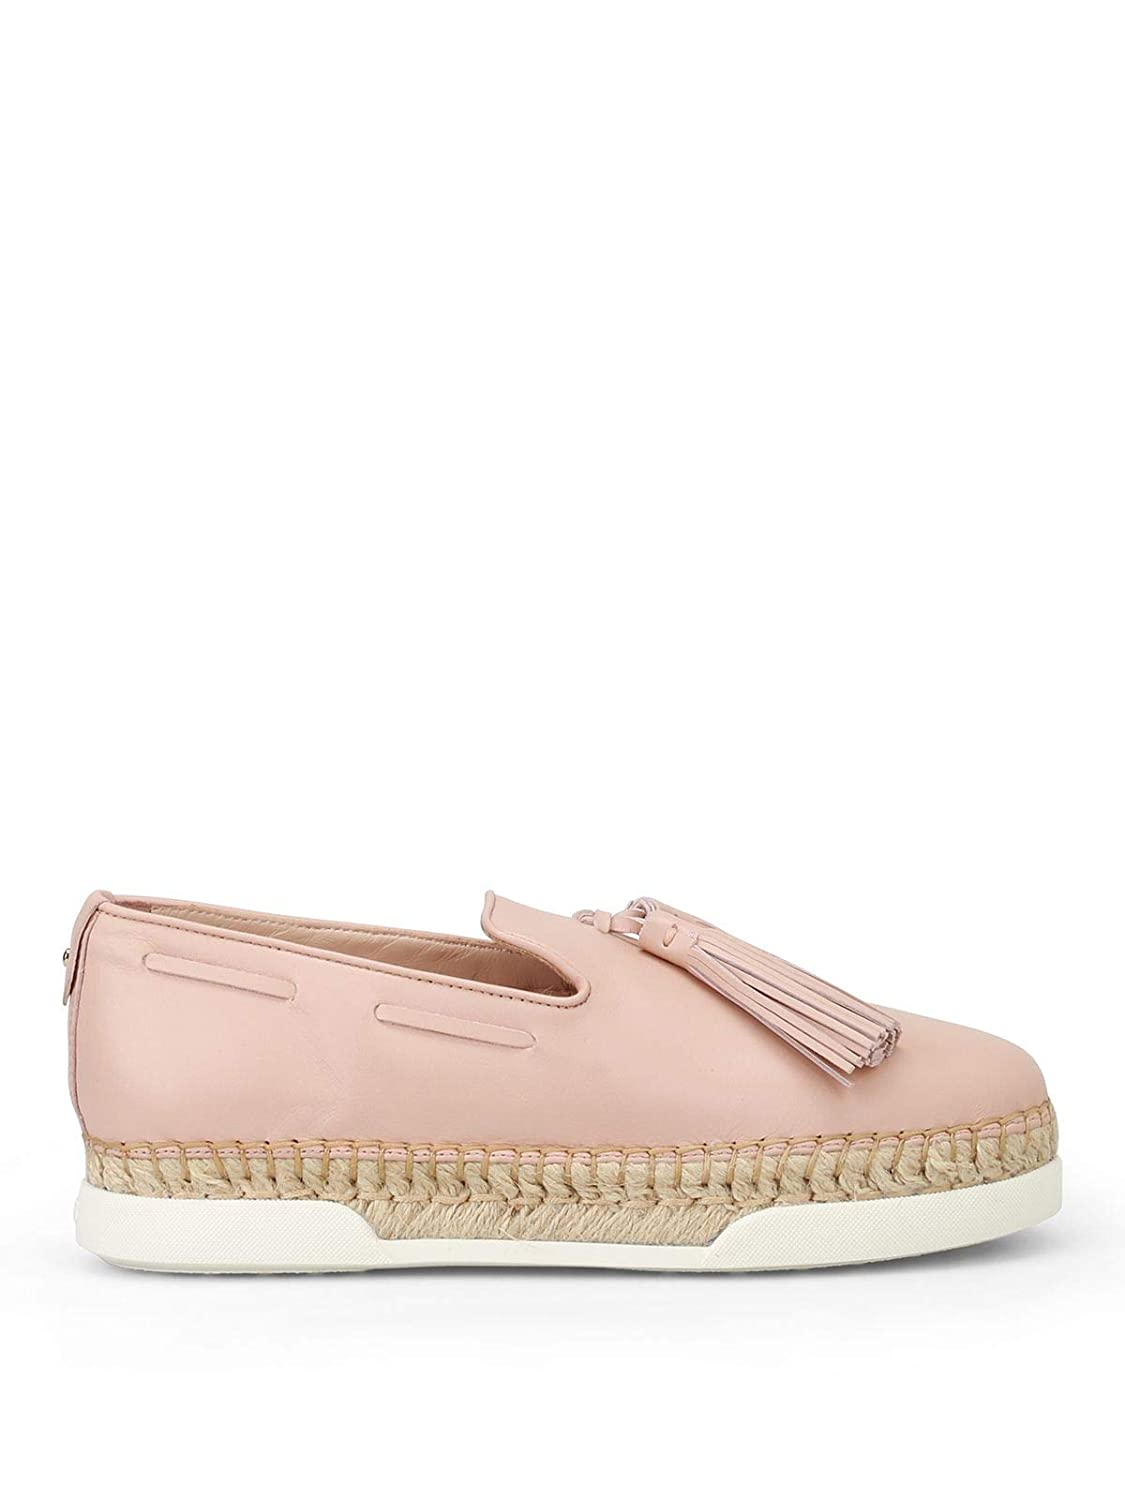 - Tod's Women's XXW96A0Y451JUSM011 Pink Leather Slip On Sneakers